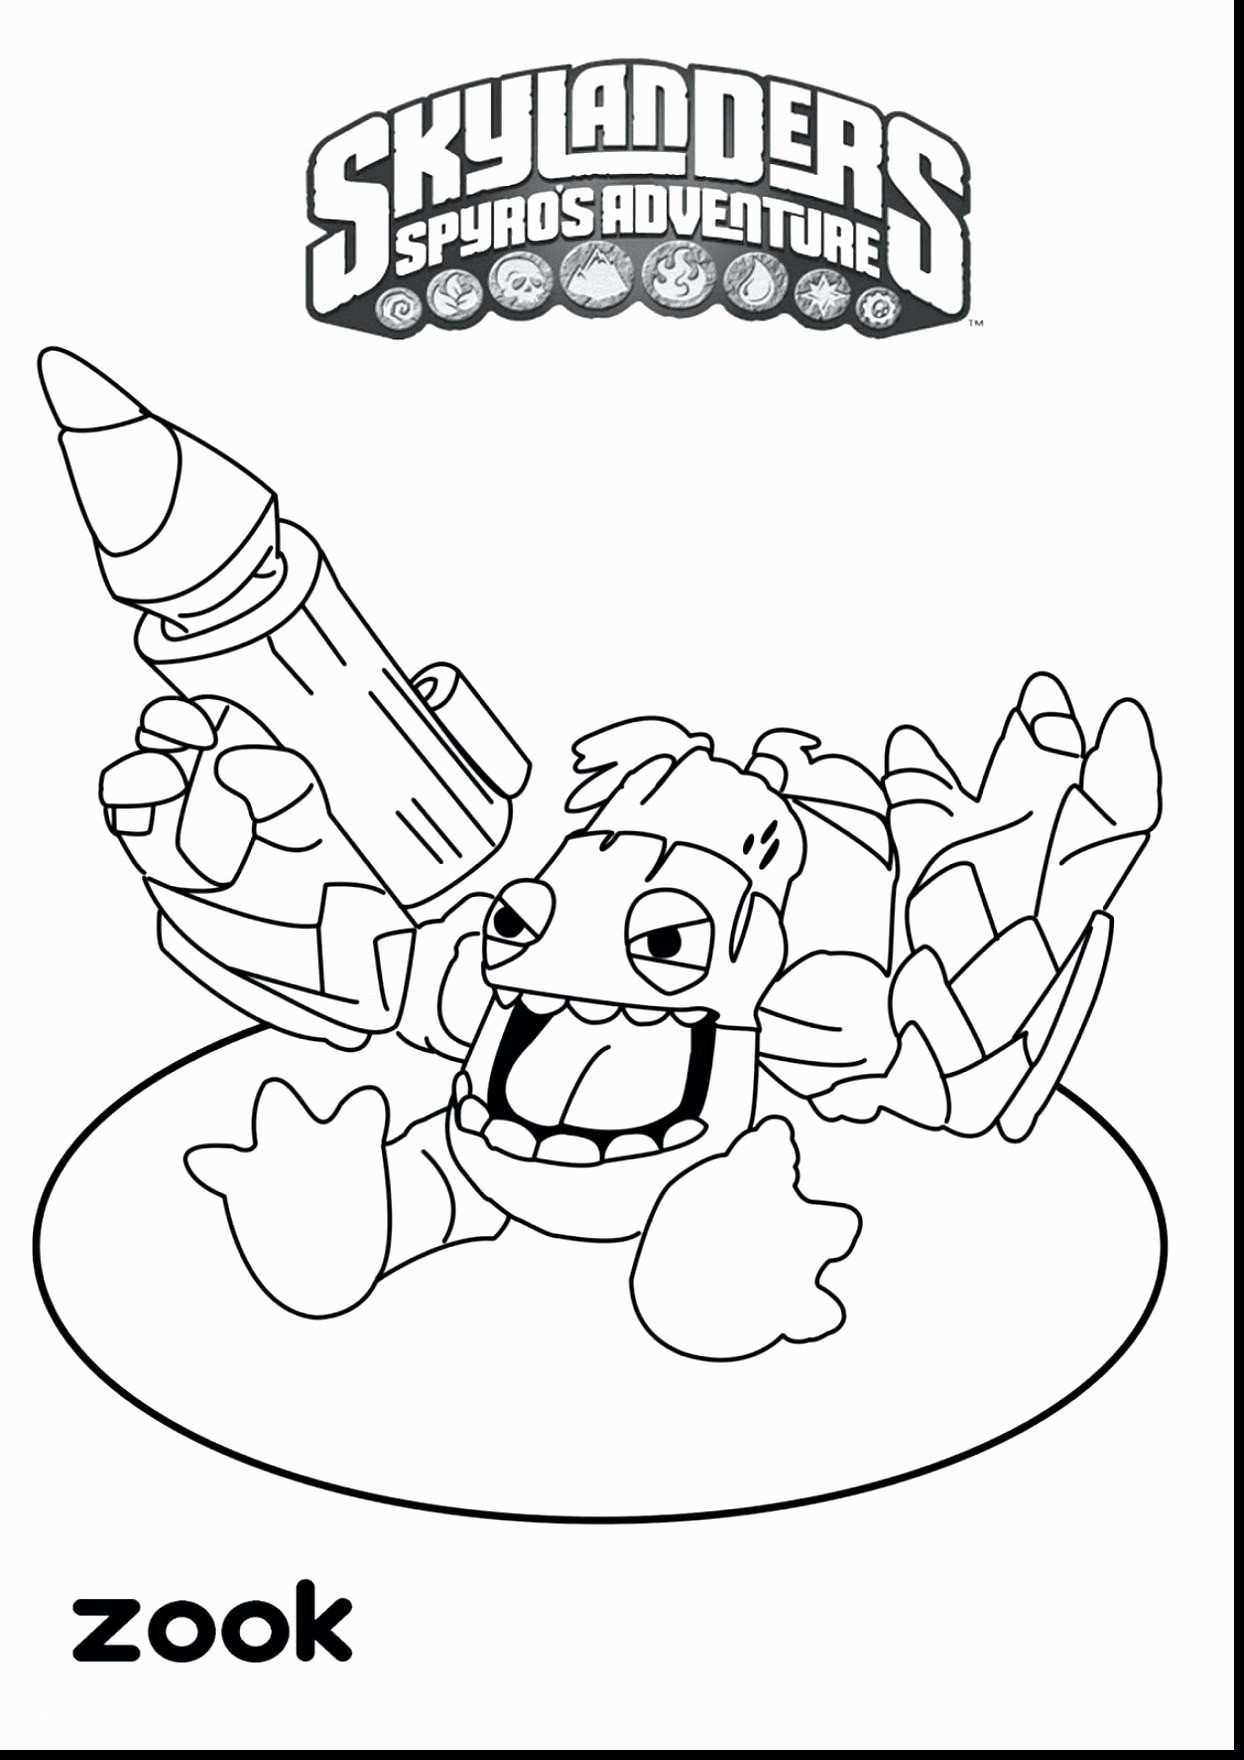 musical instruments coloring pages Download-Musical Instruments Coloring Pages Lovely Easy to Draw Instruments Home Coloring Pages Best Color Sheet 0d 1-k